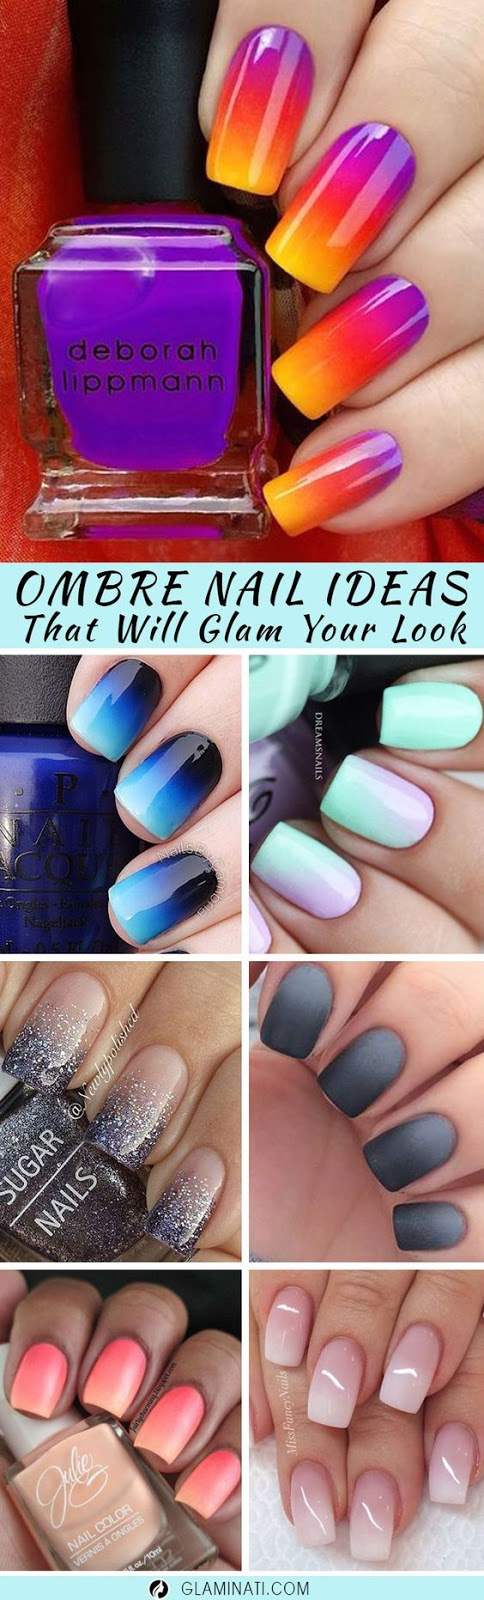 GLAM IDEAS FOR OMBRE NAILS PLUS TUTORIAL